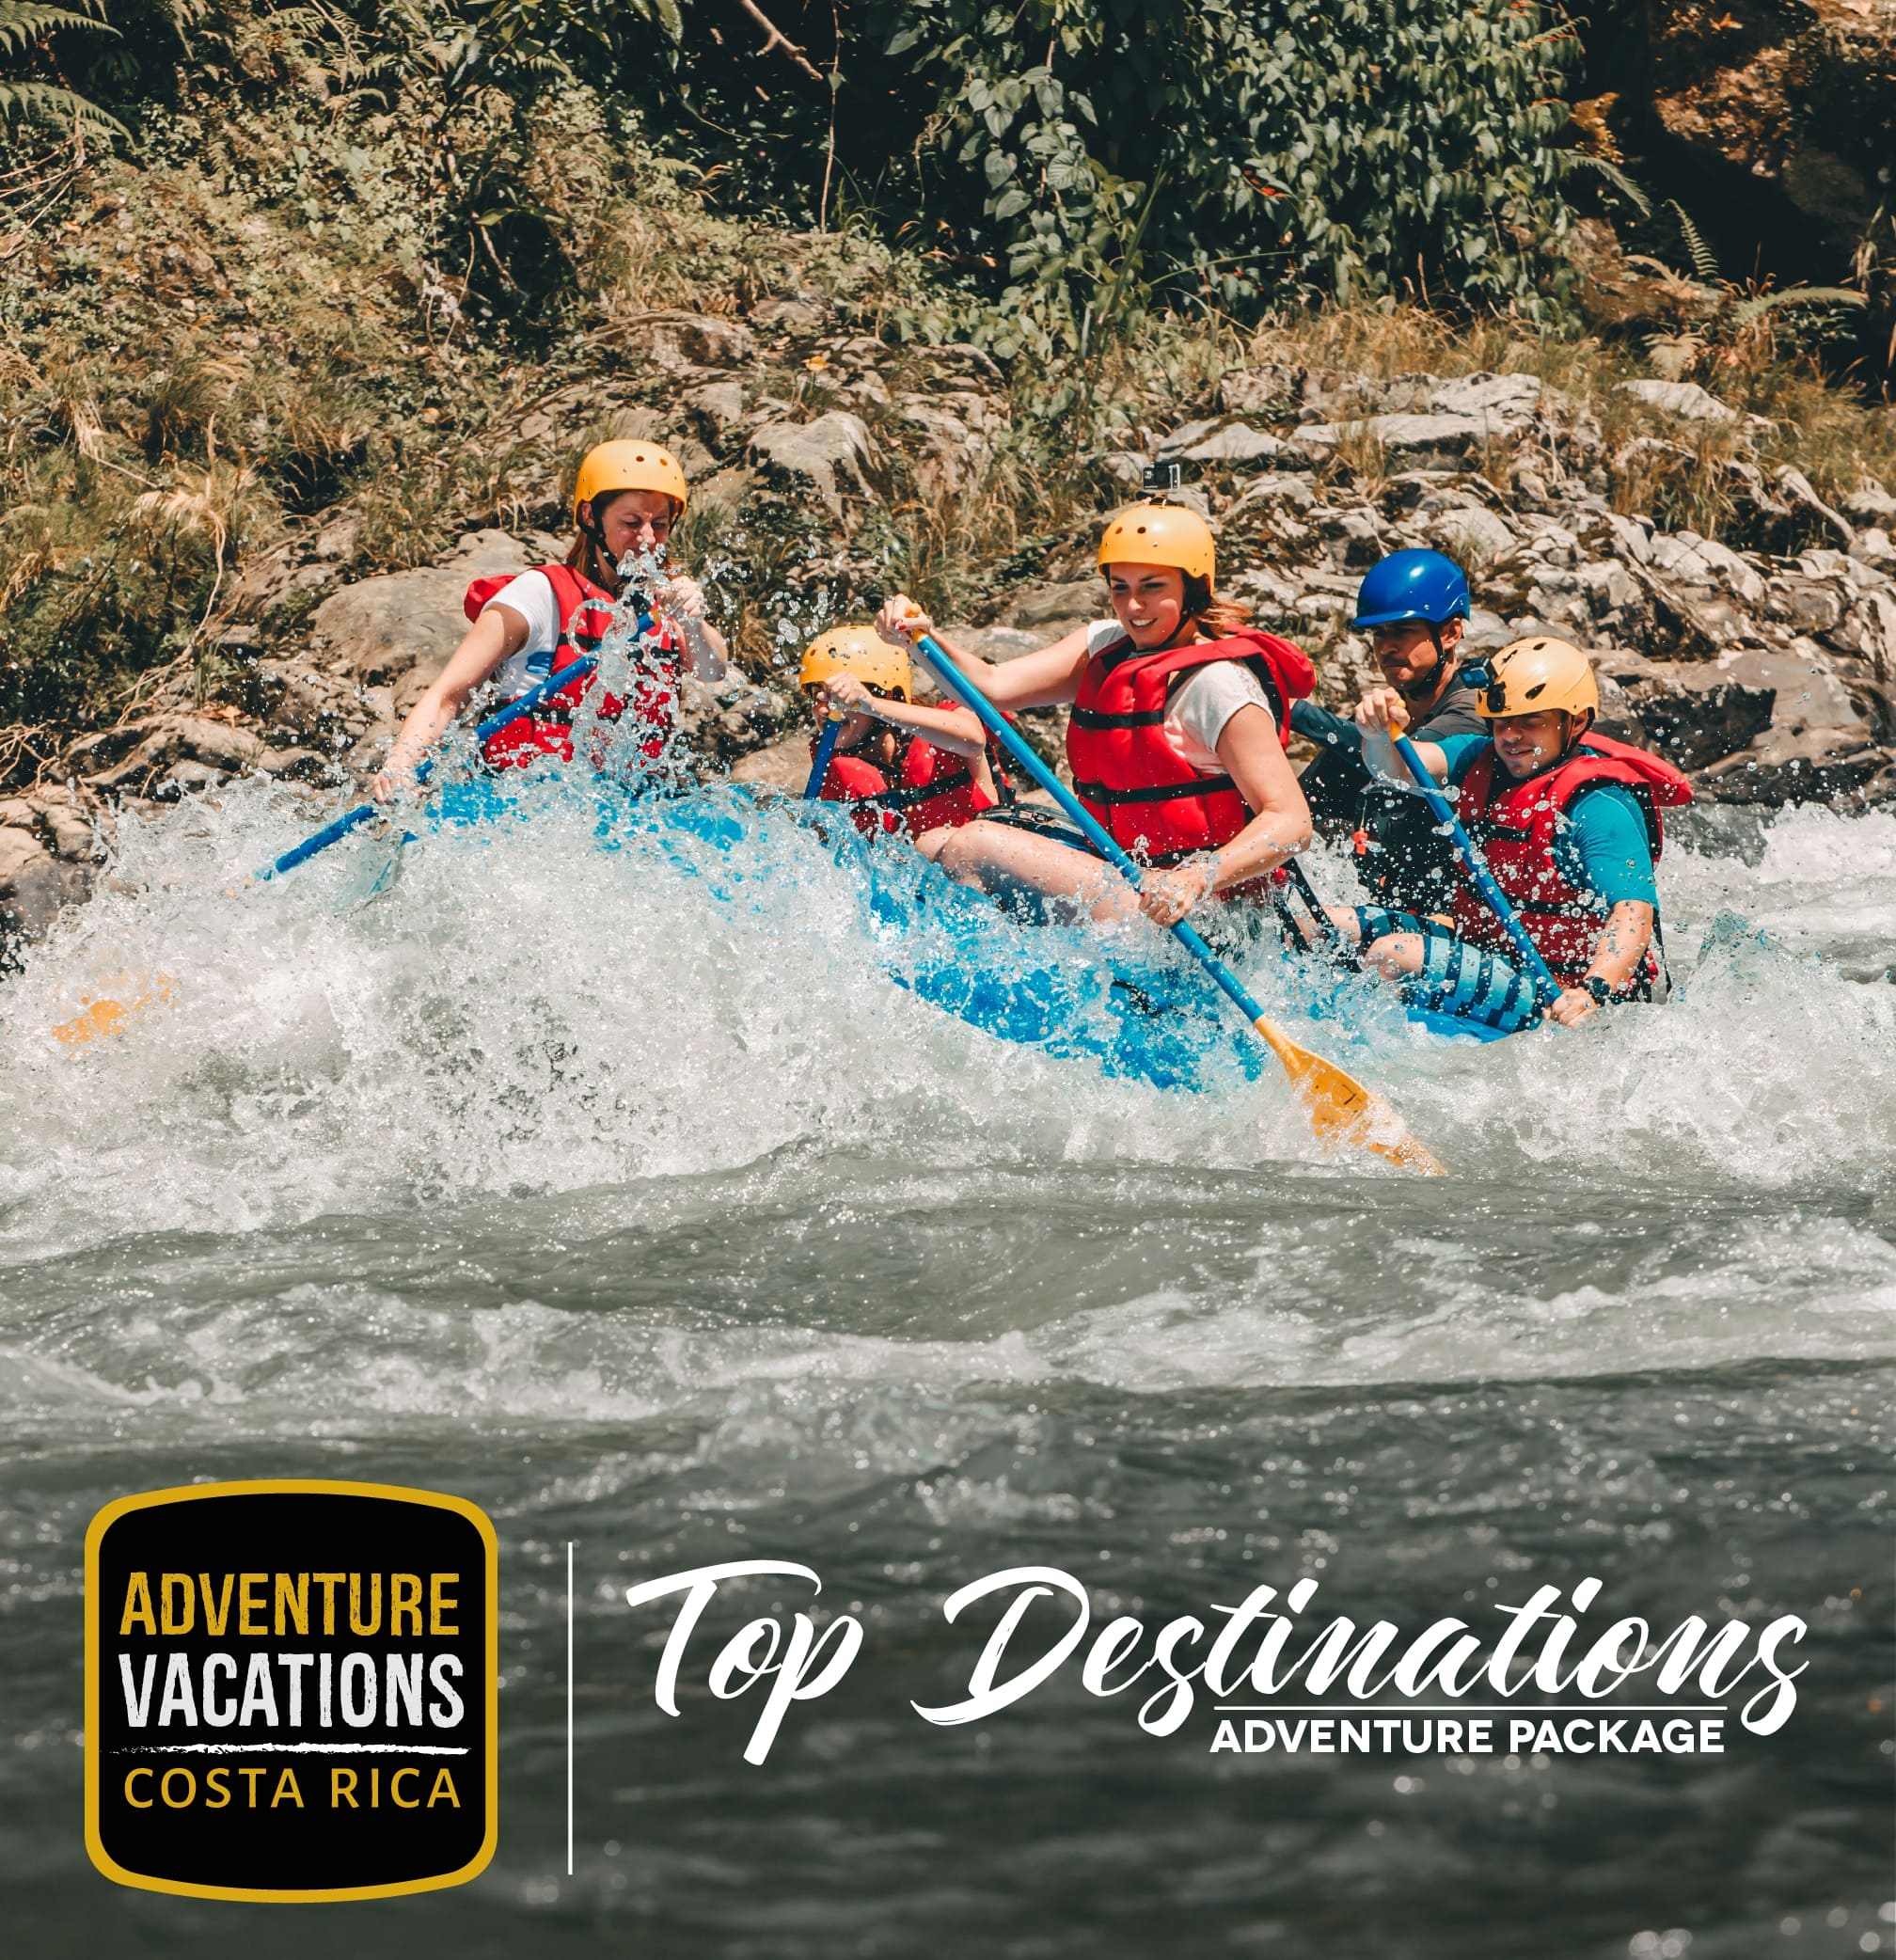 Top destinations Adventure